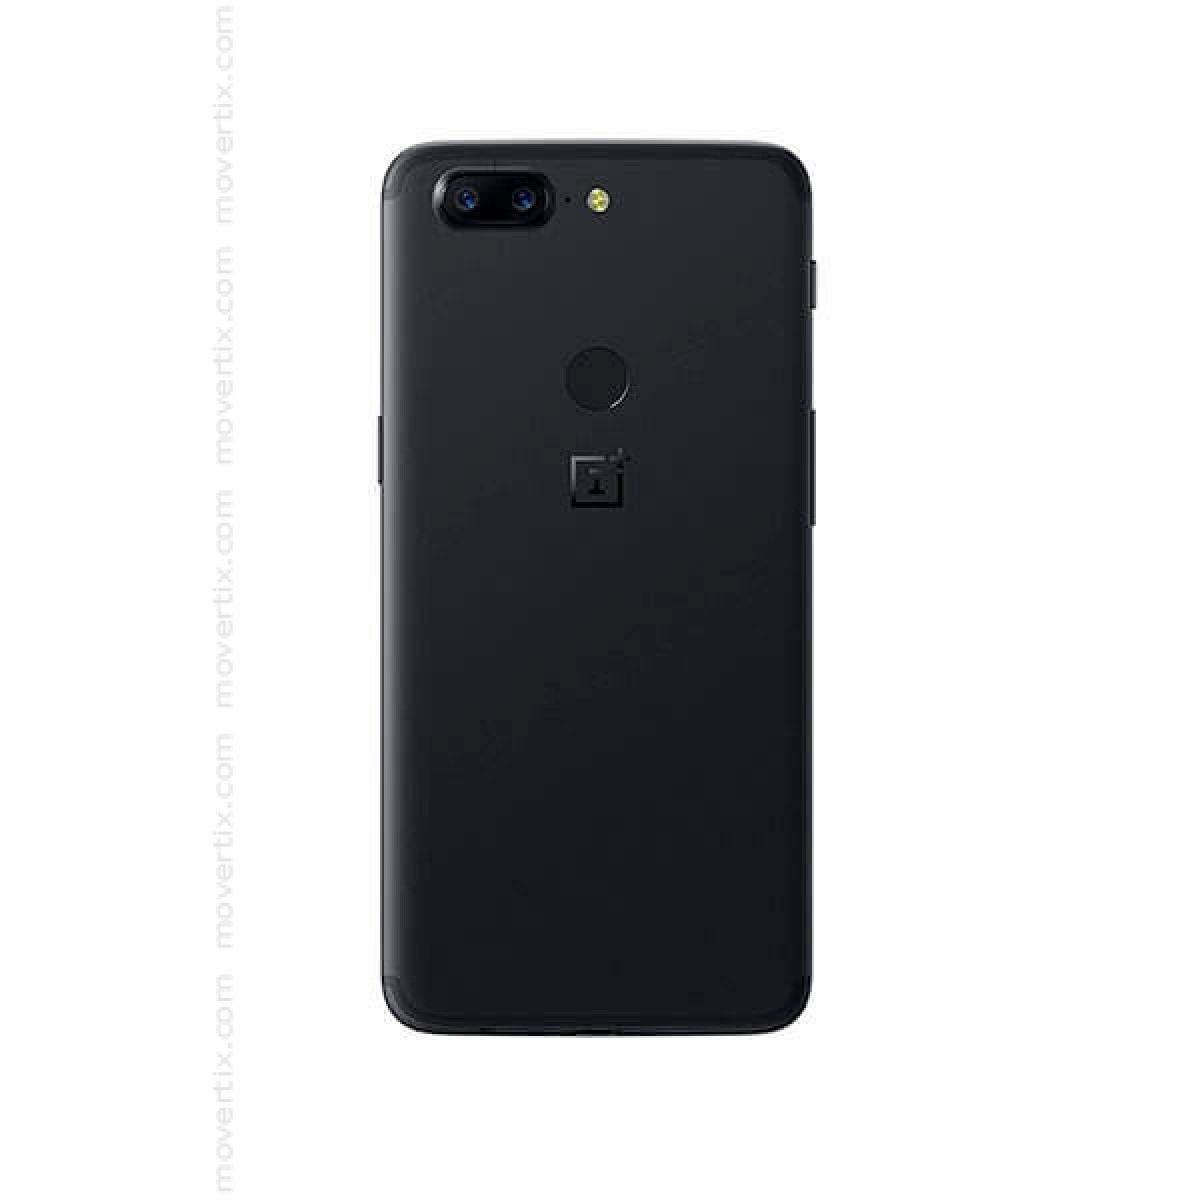 OnePlus 5T Black 64GB